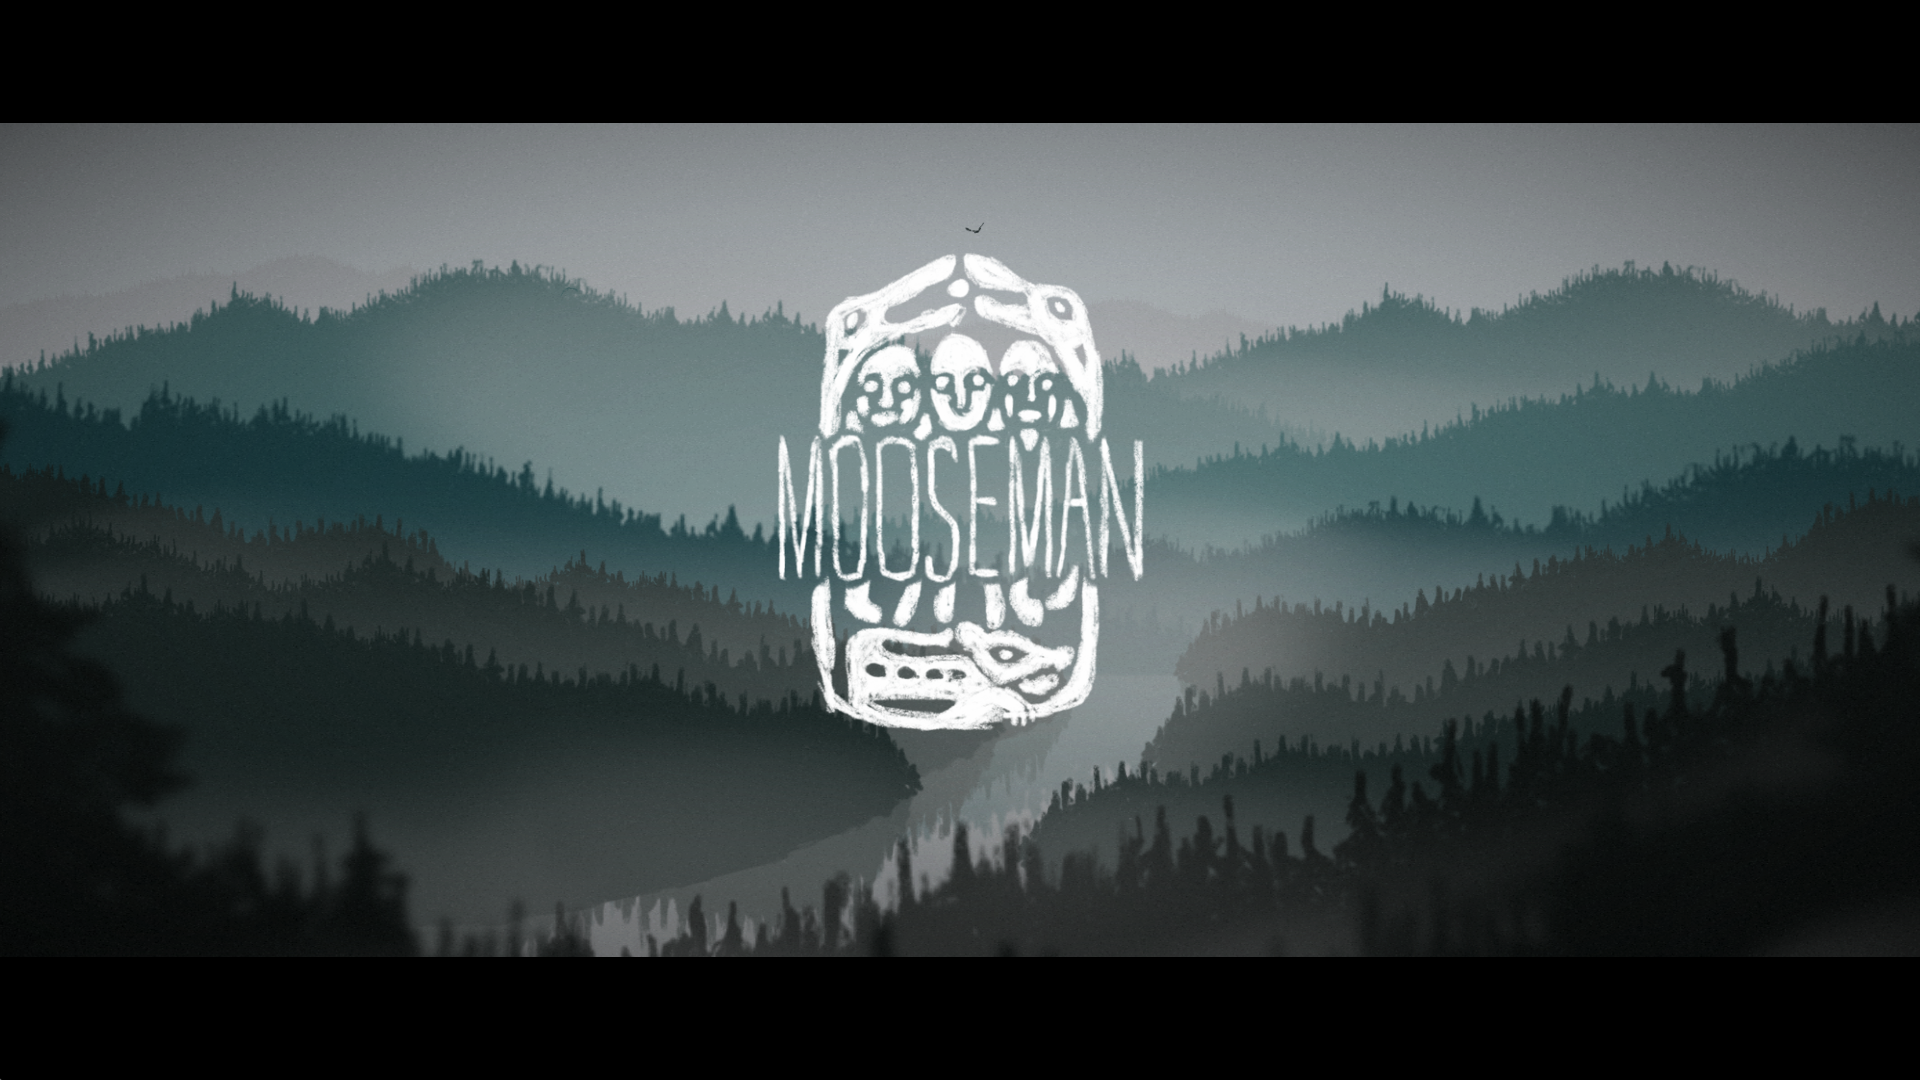 Review: The Mooseman